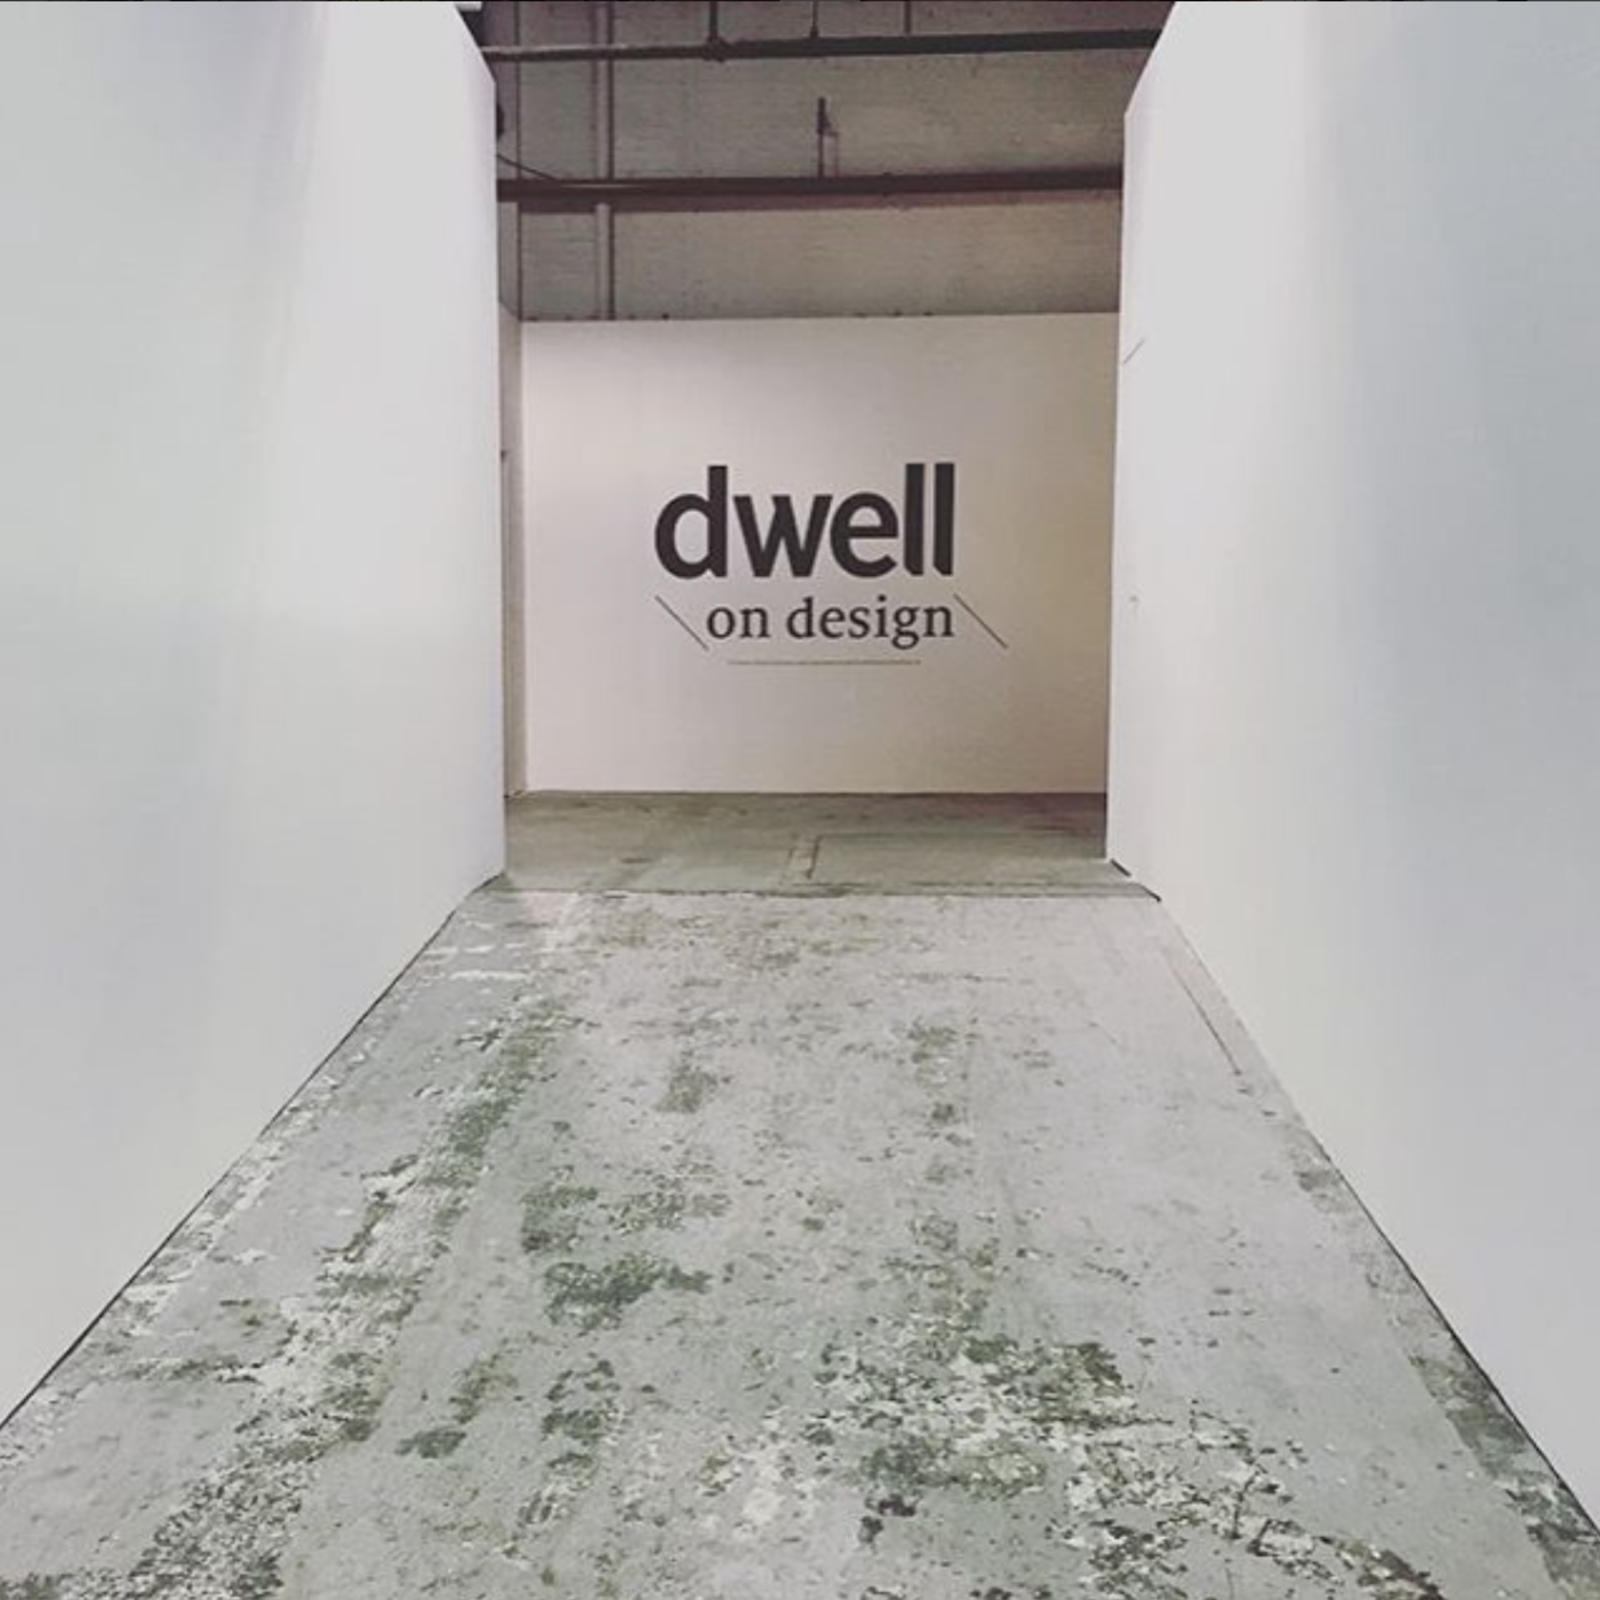 @chadlock posted a glimpse of the minimal entryway.  Dwell on Design New York: Day One Highlights by Dwell